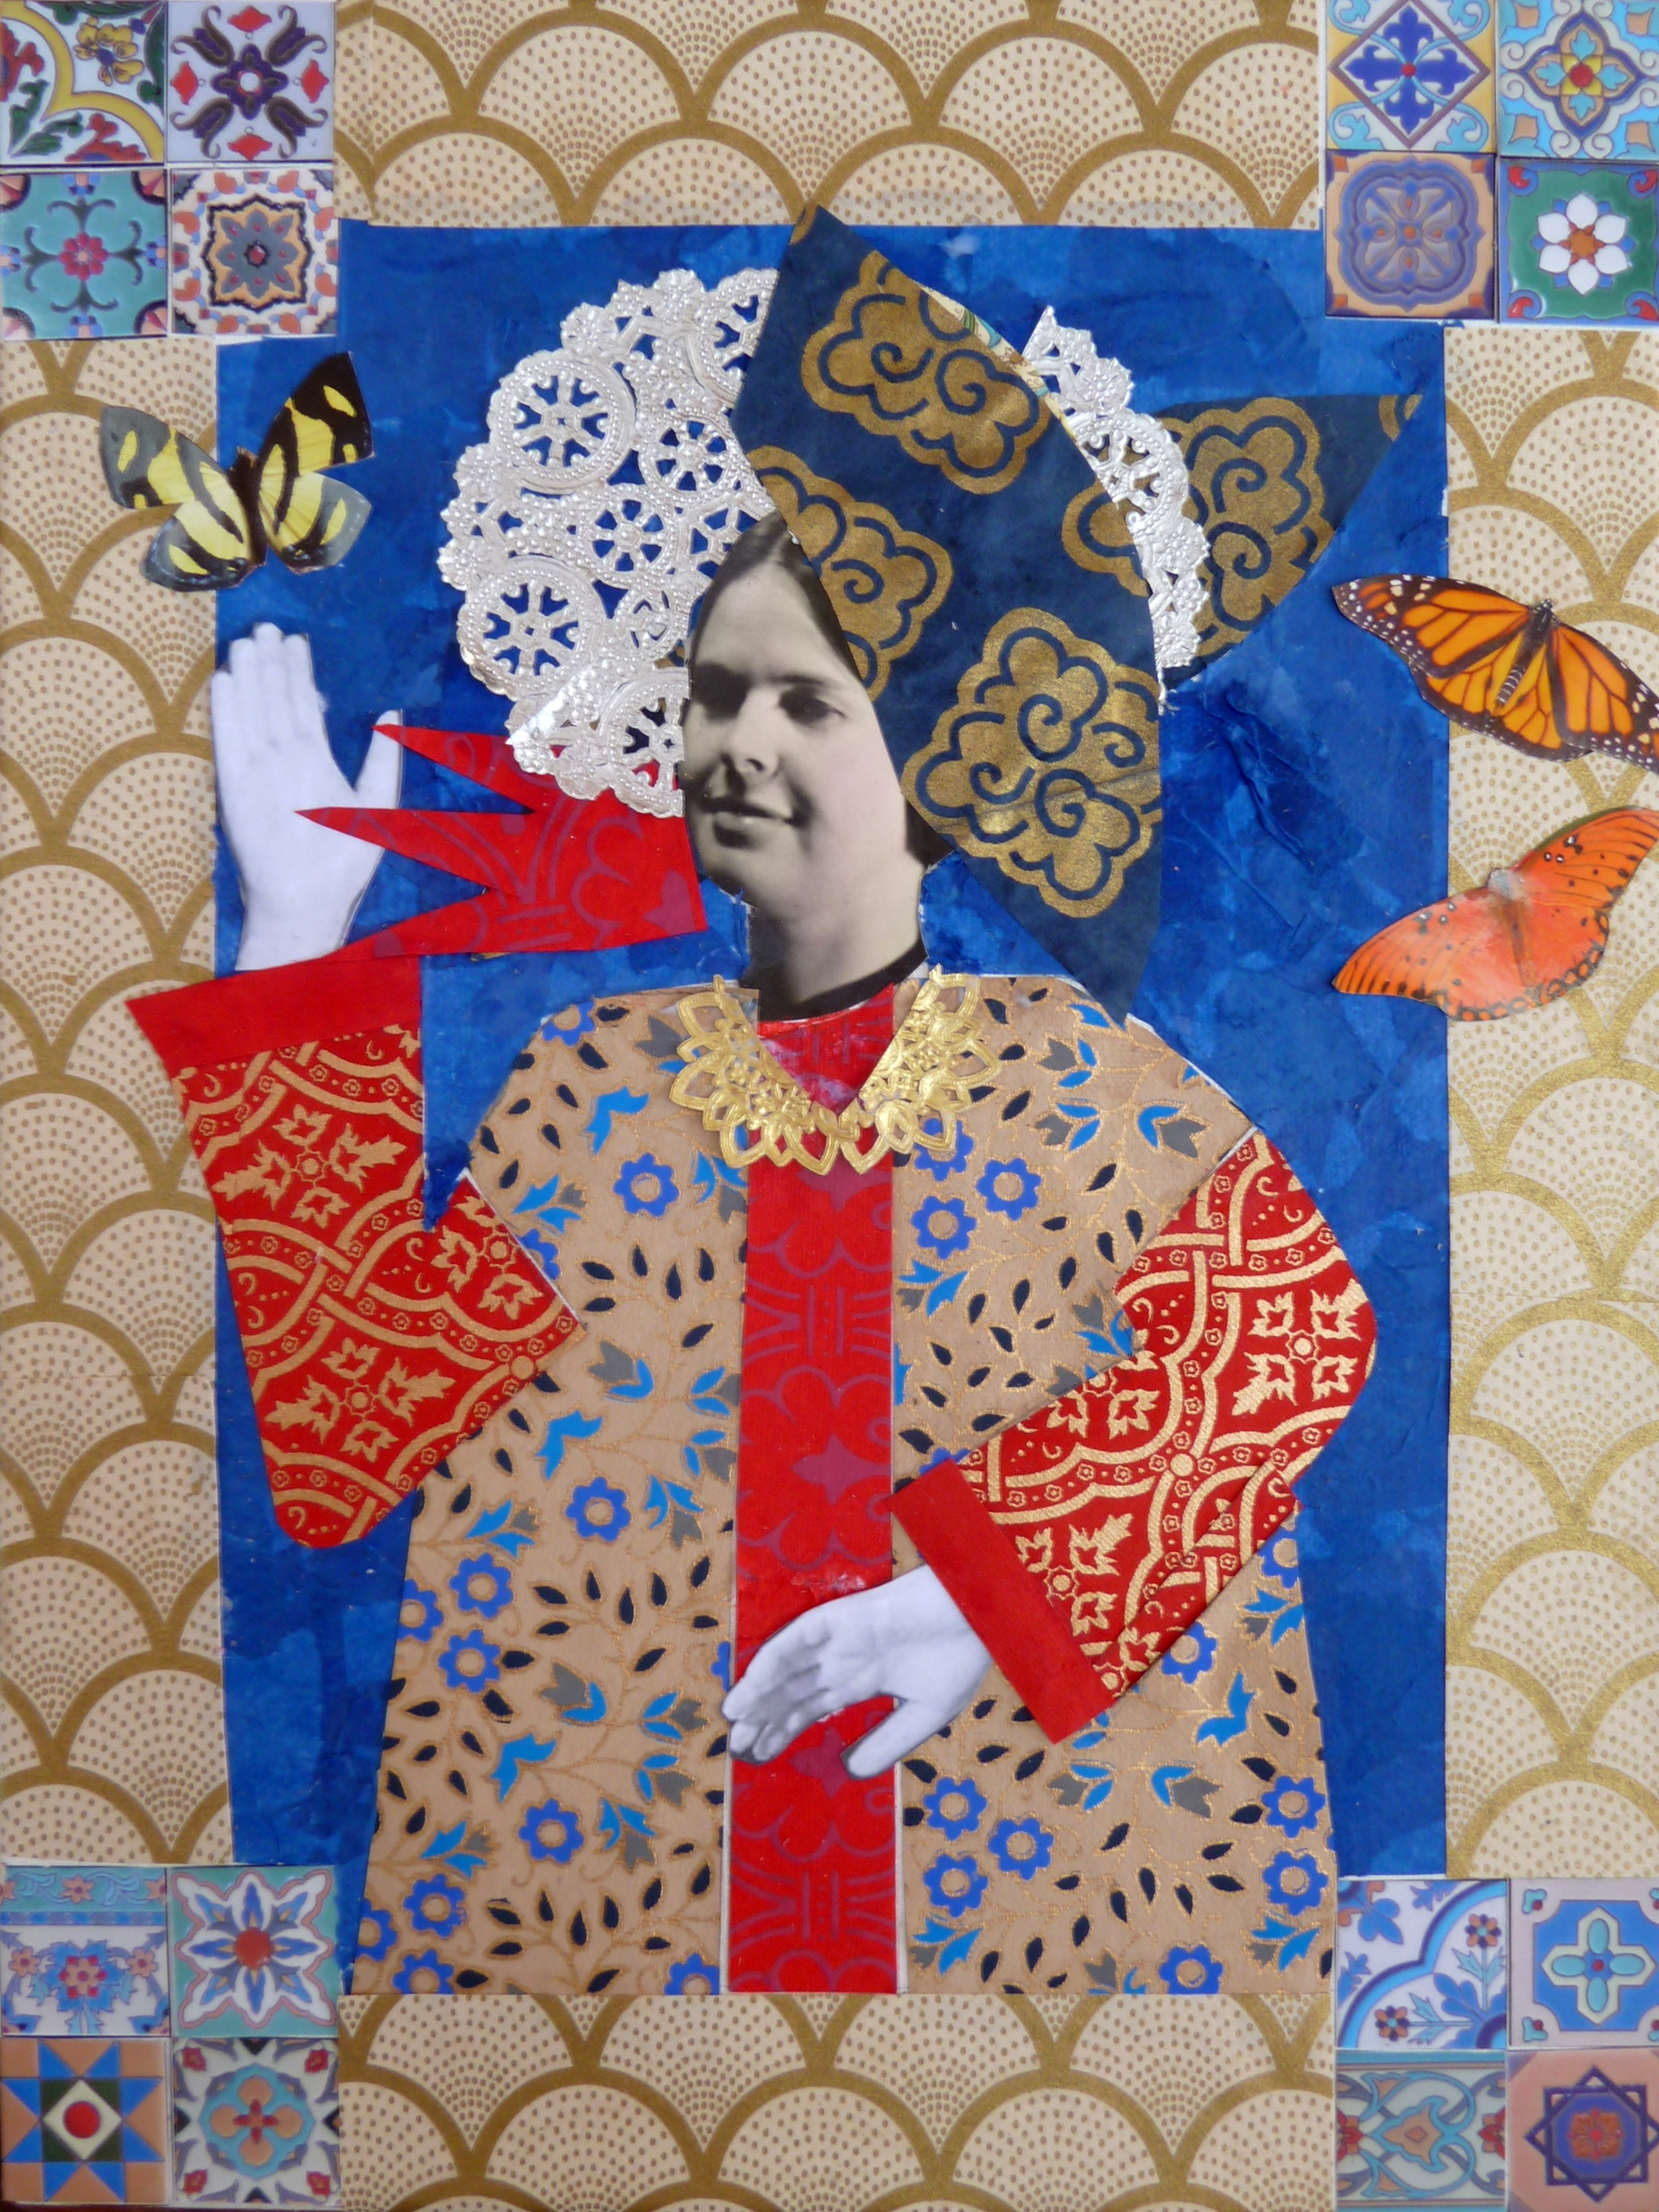 Bright color, tiled corners, butterflies and patterns.